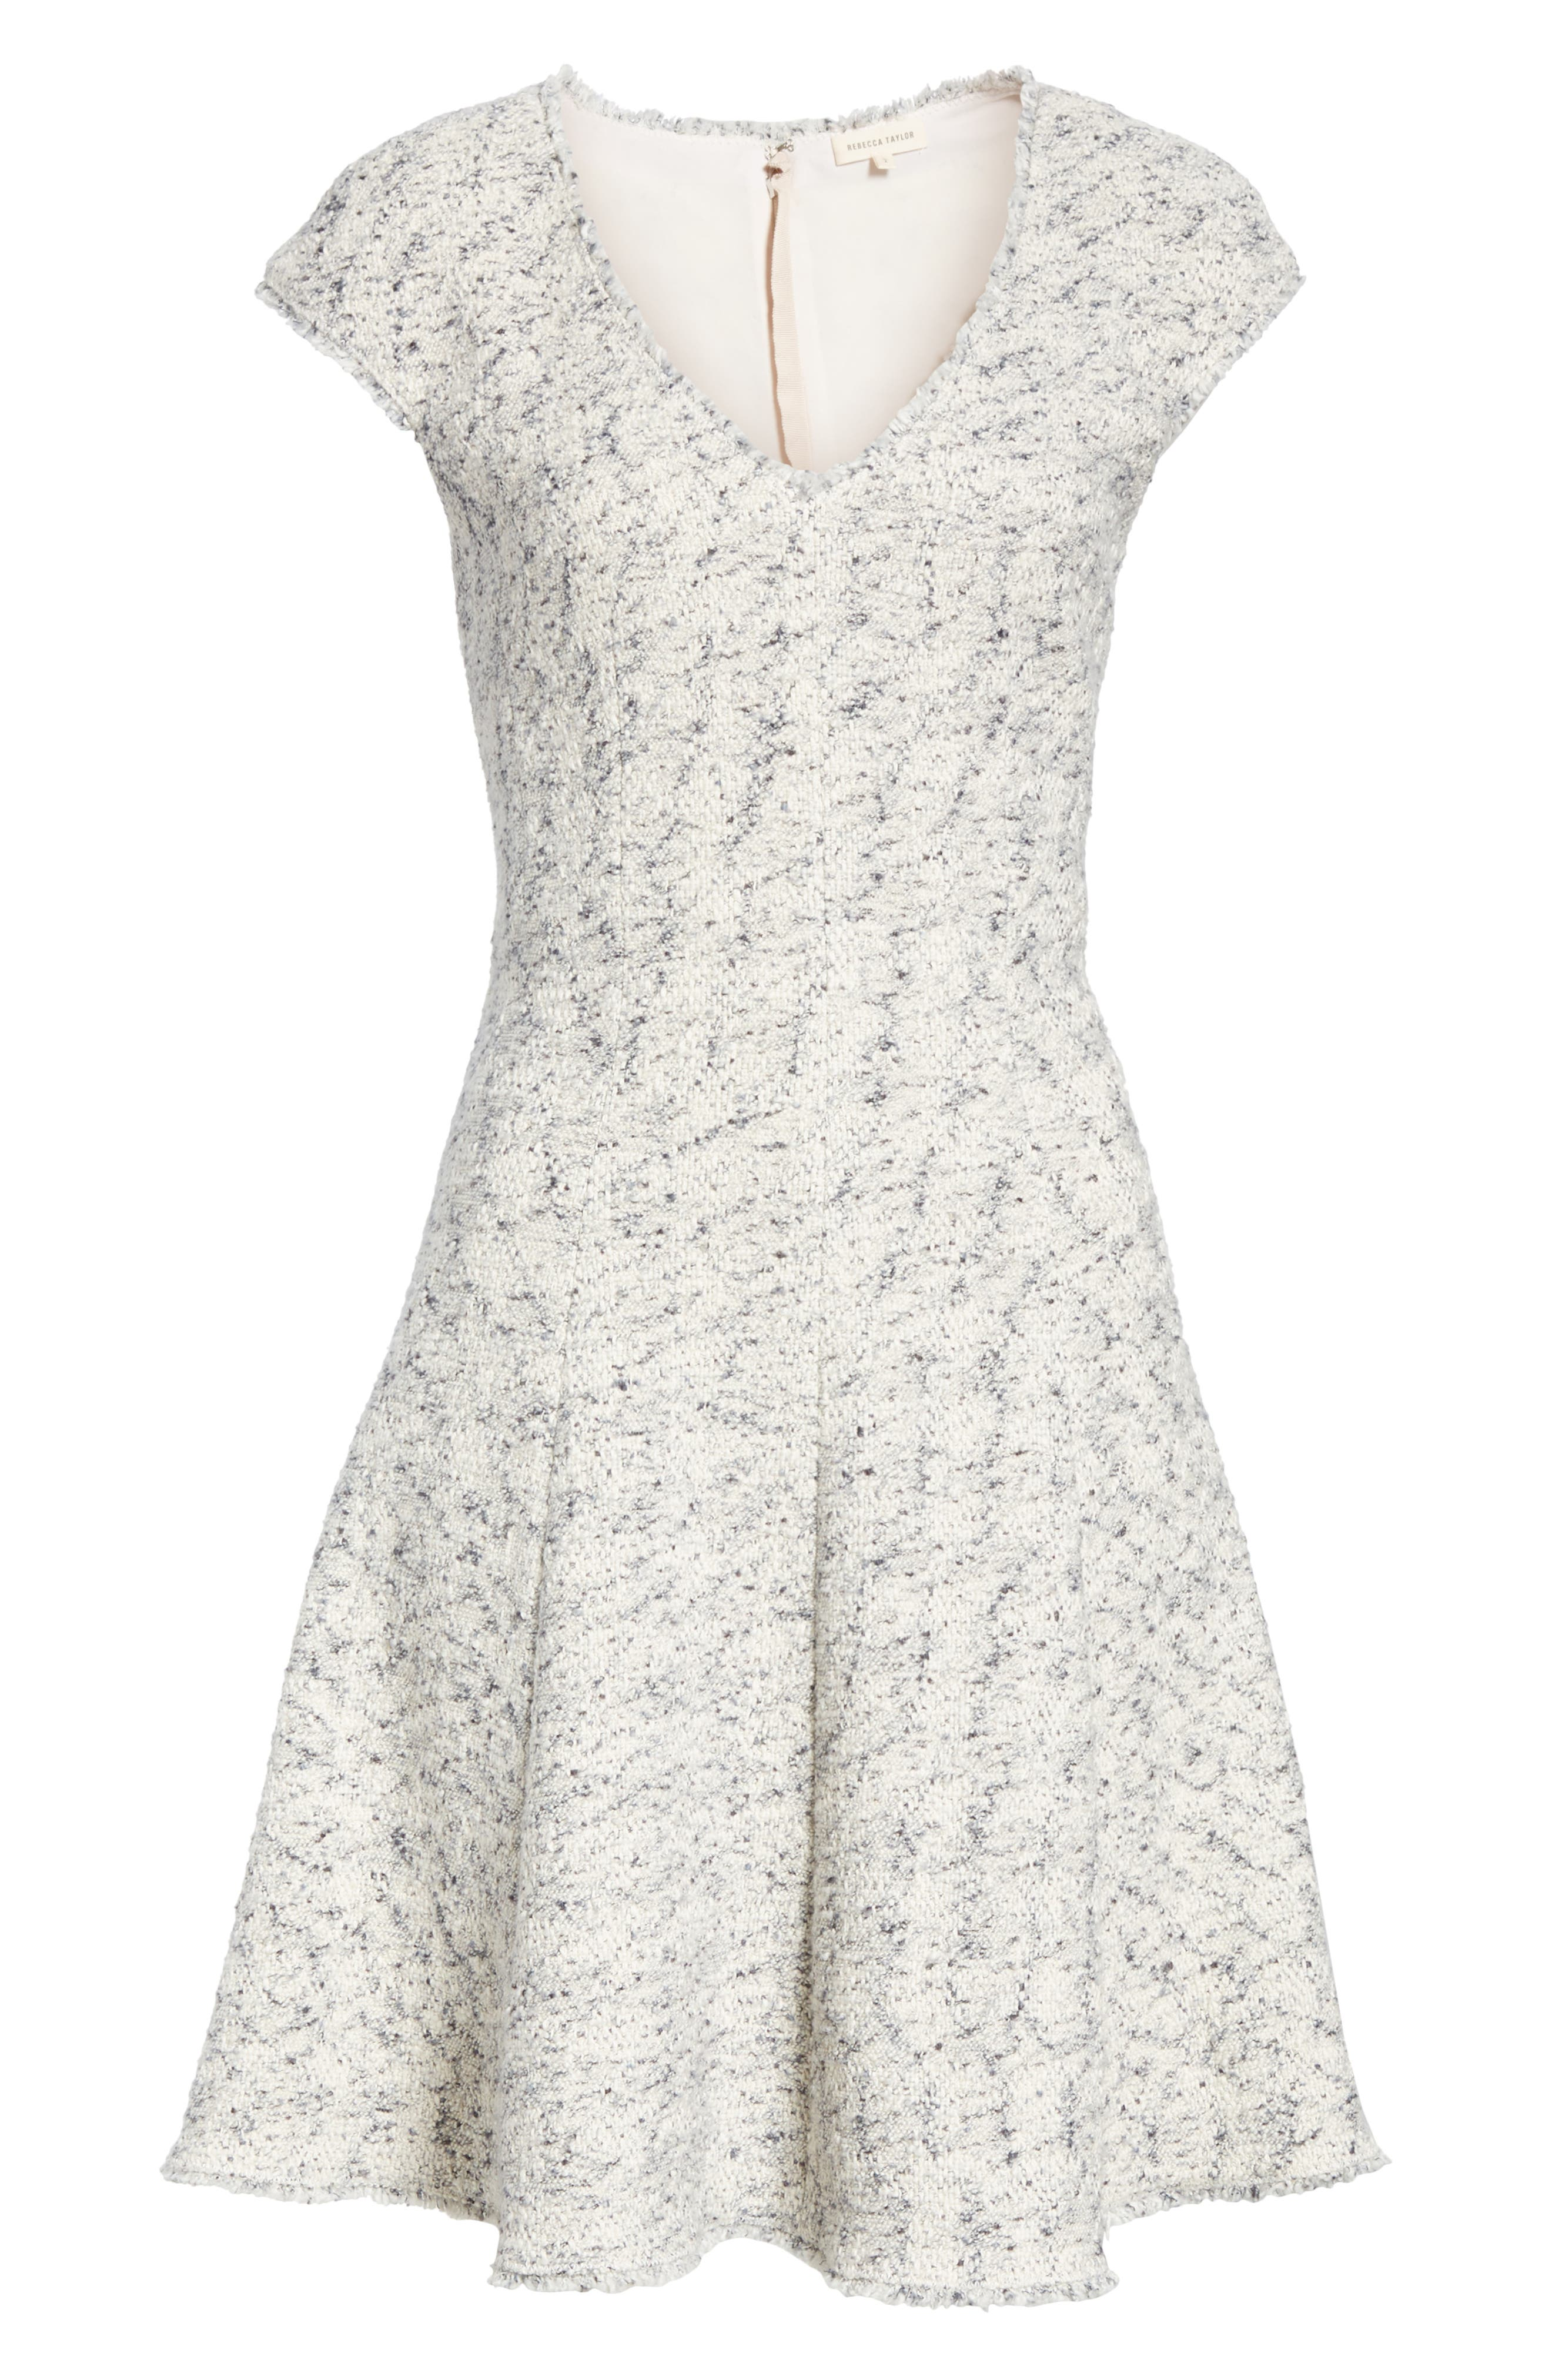 Emilie Embroidered Sweater,                             Alternate thumbnail 6, color,                             001